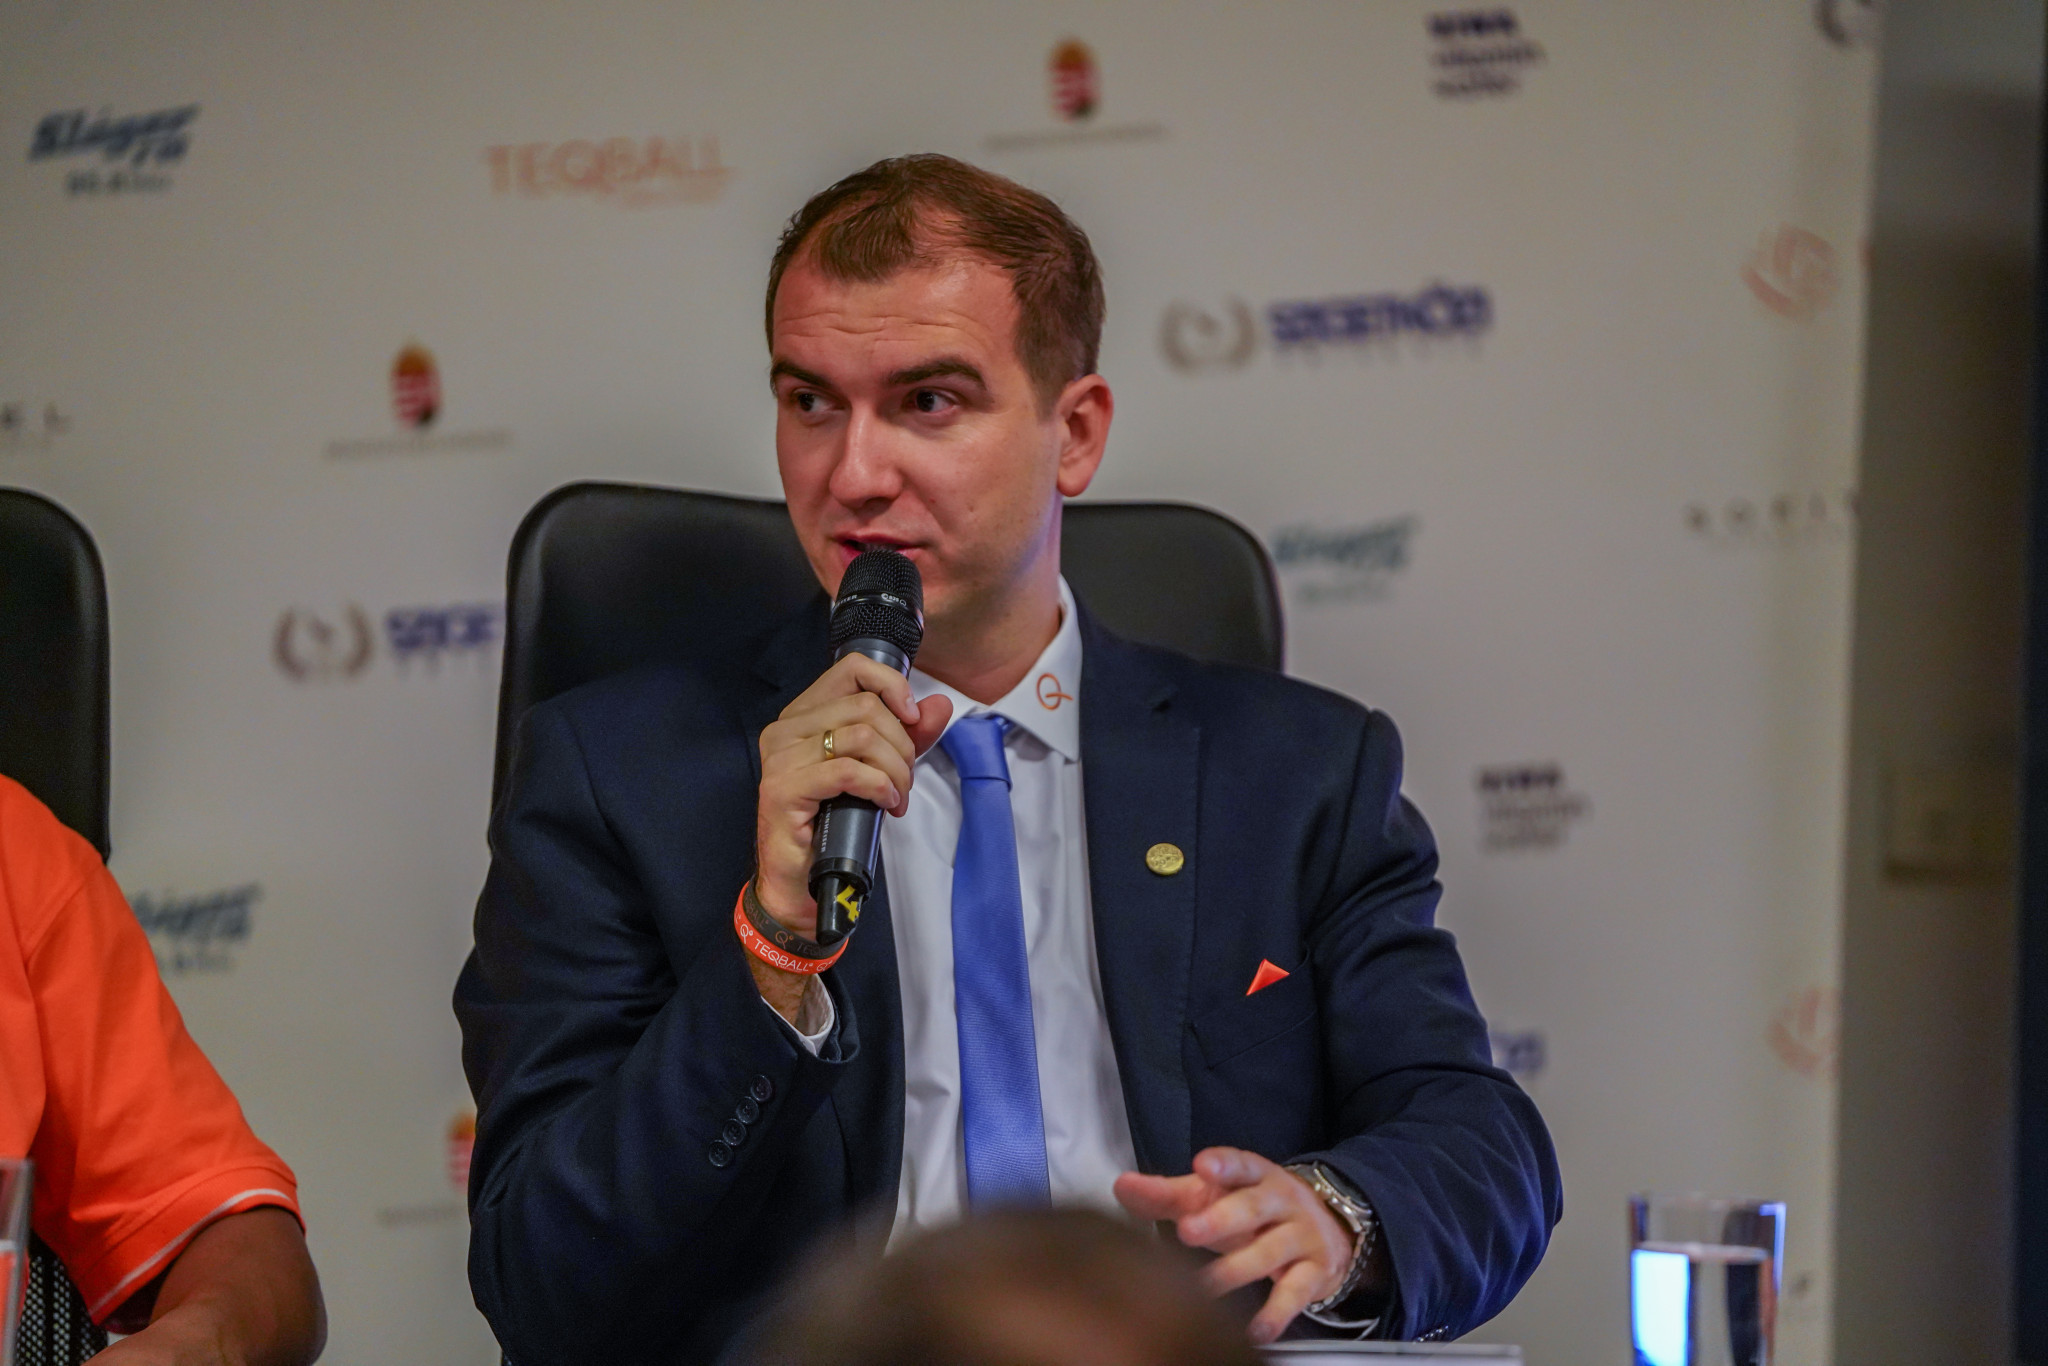 FITEQ chairman Viktor Huszár spoke of the Teqball World Championships at the virtual General Assembly ©FITEQ